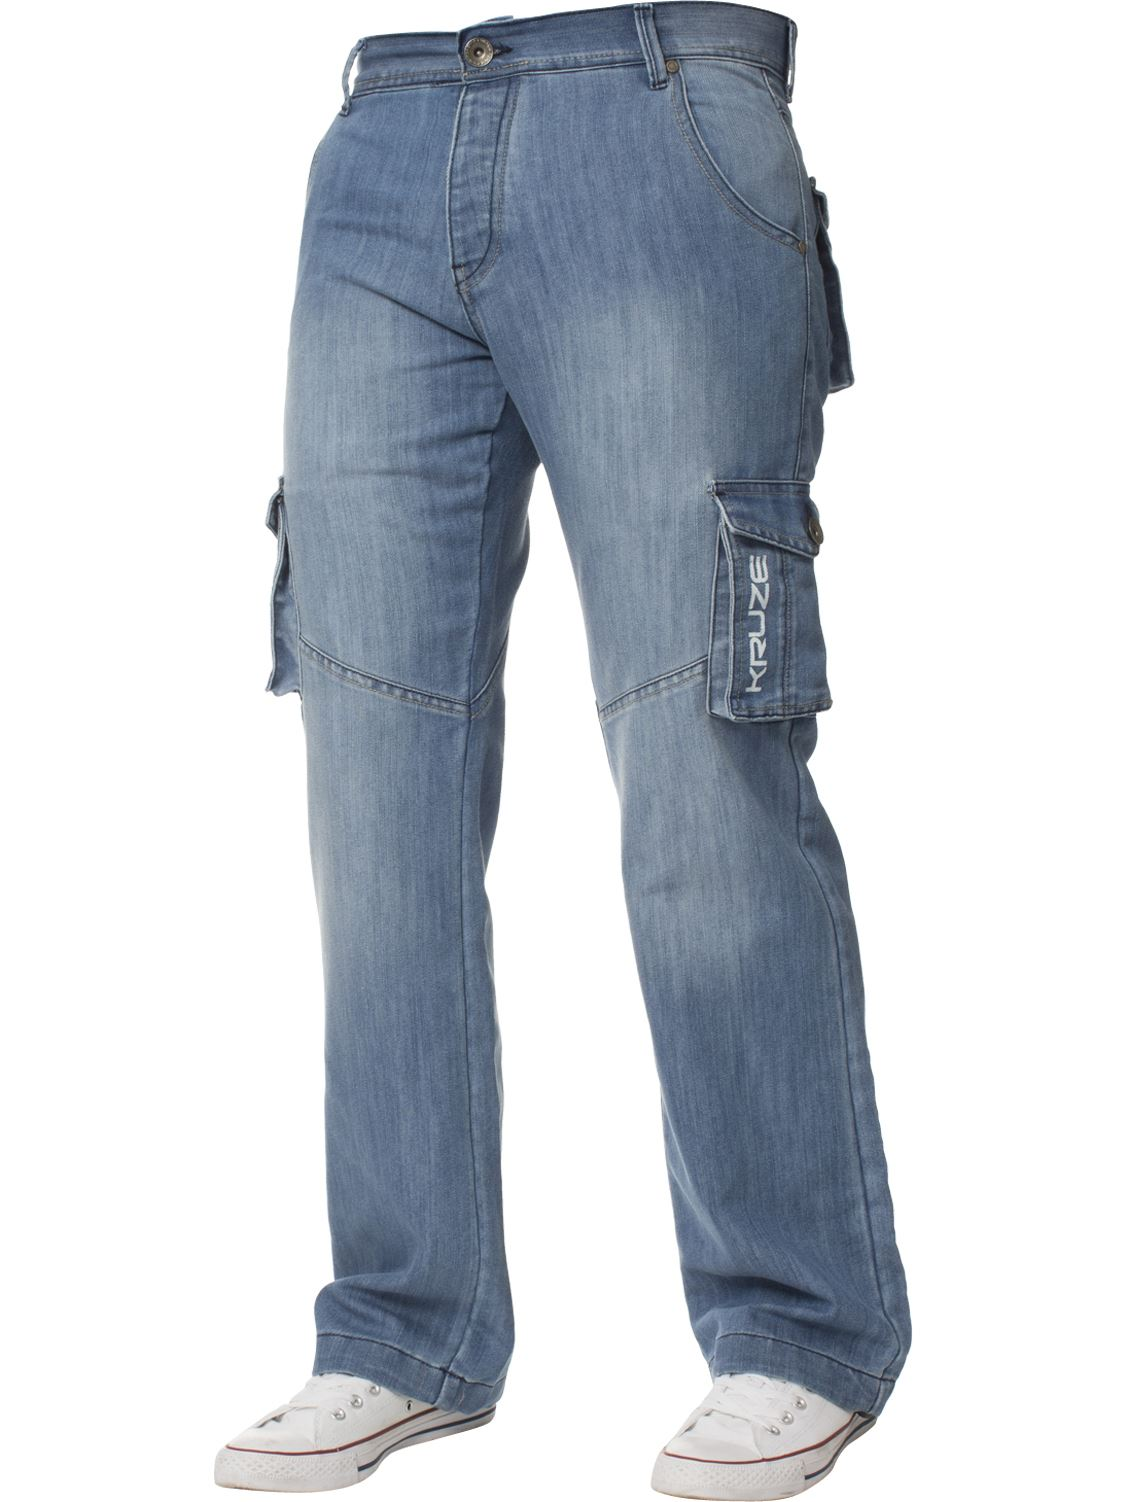 Mens-Cargo-Combat-Trousers-Jeans-Heavy-Duty-Work-Casual-Pants-Big-Tall-All-Sizes thumbnail 16